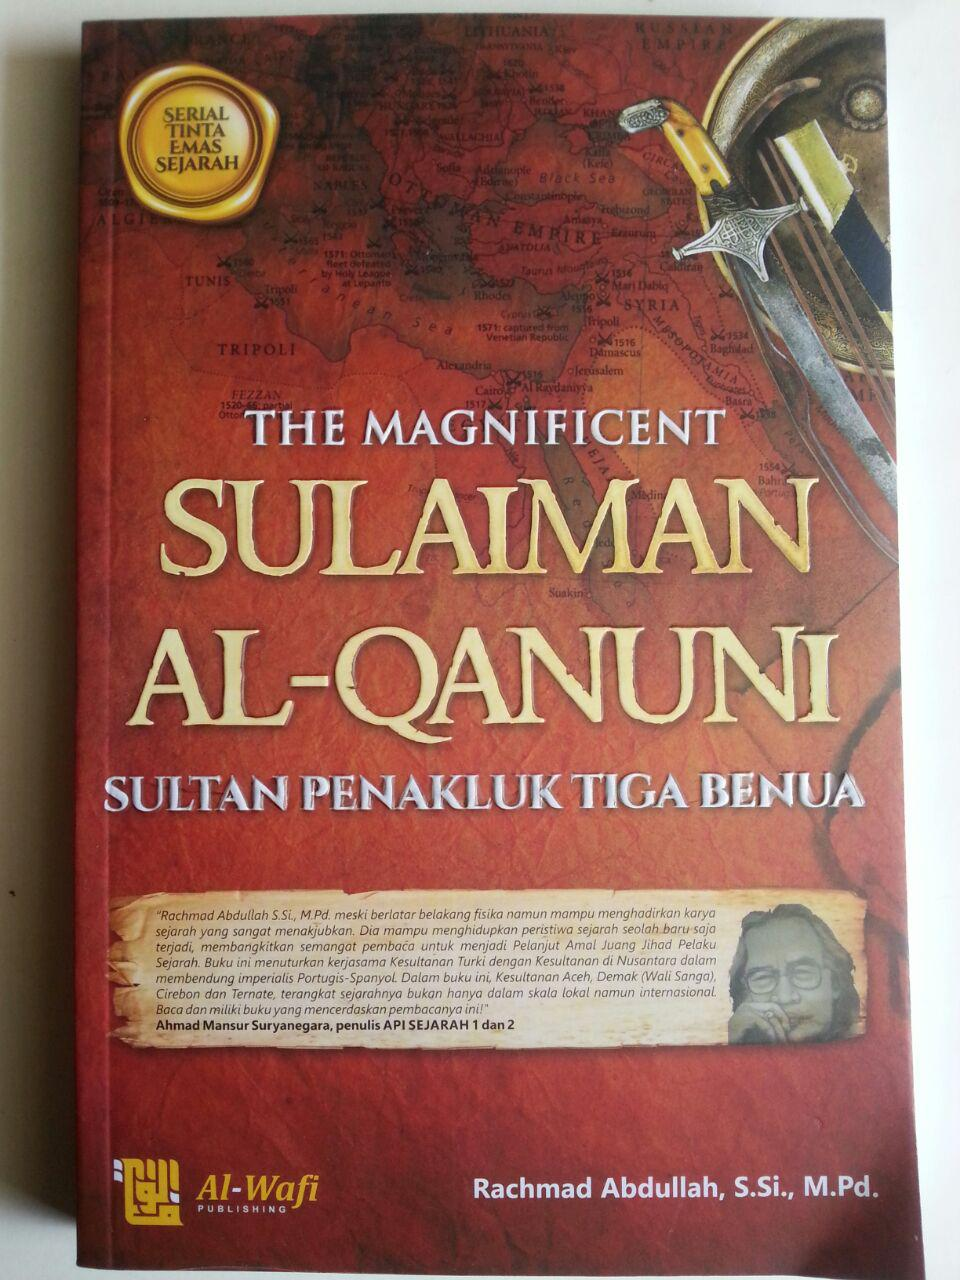 Buku The Magnificent Sulaiman Al-Qanuni Sultan Penakluk Tiga Benua cover 2